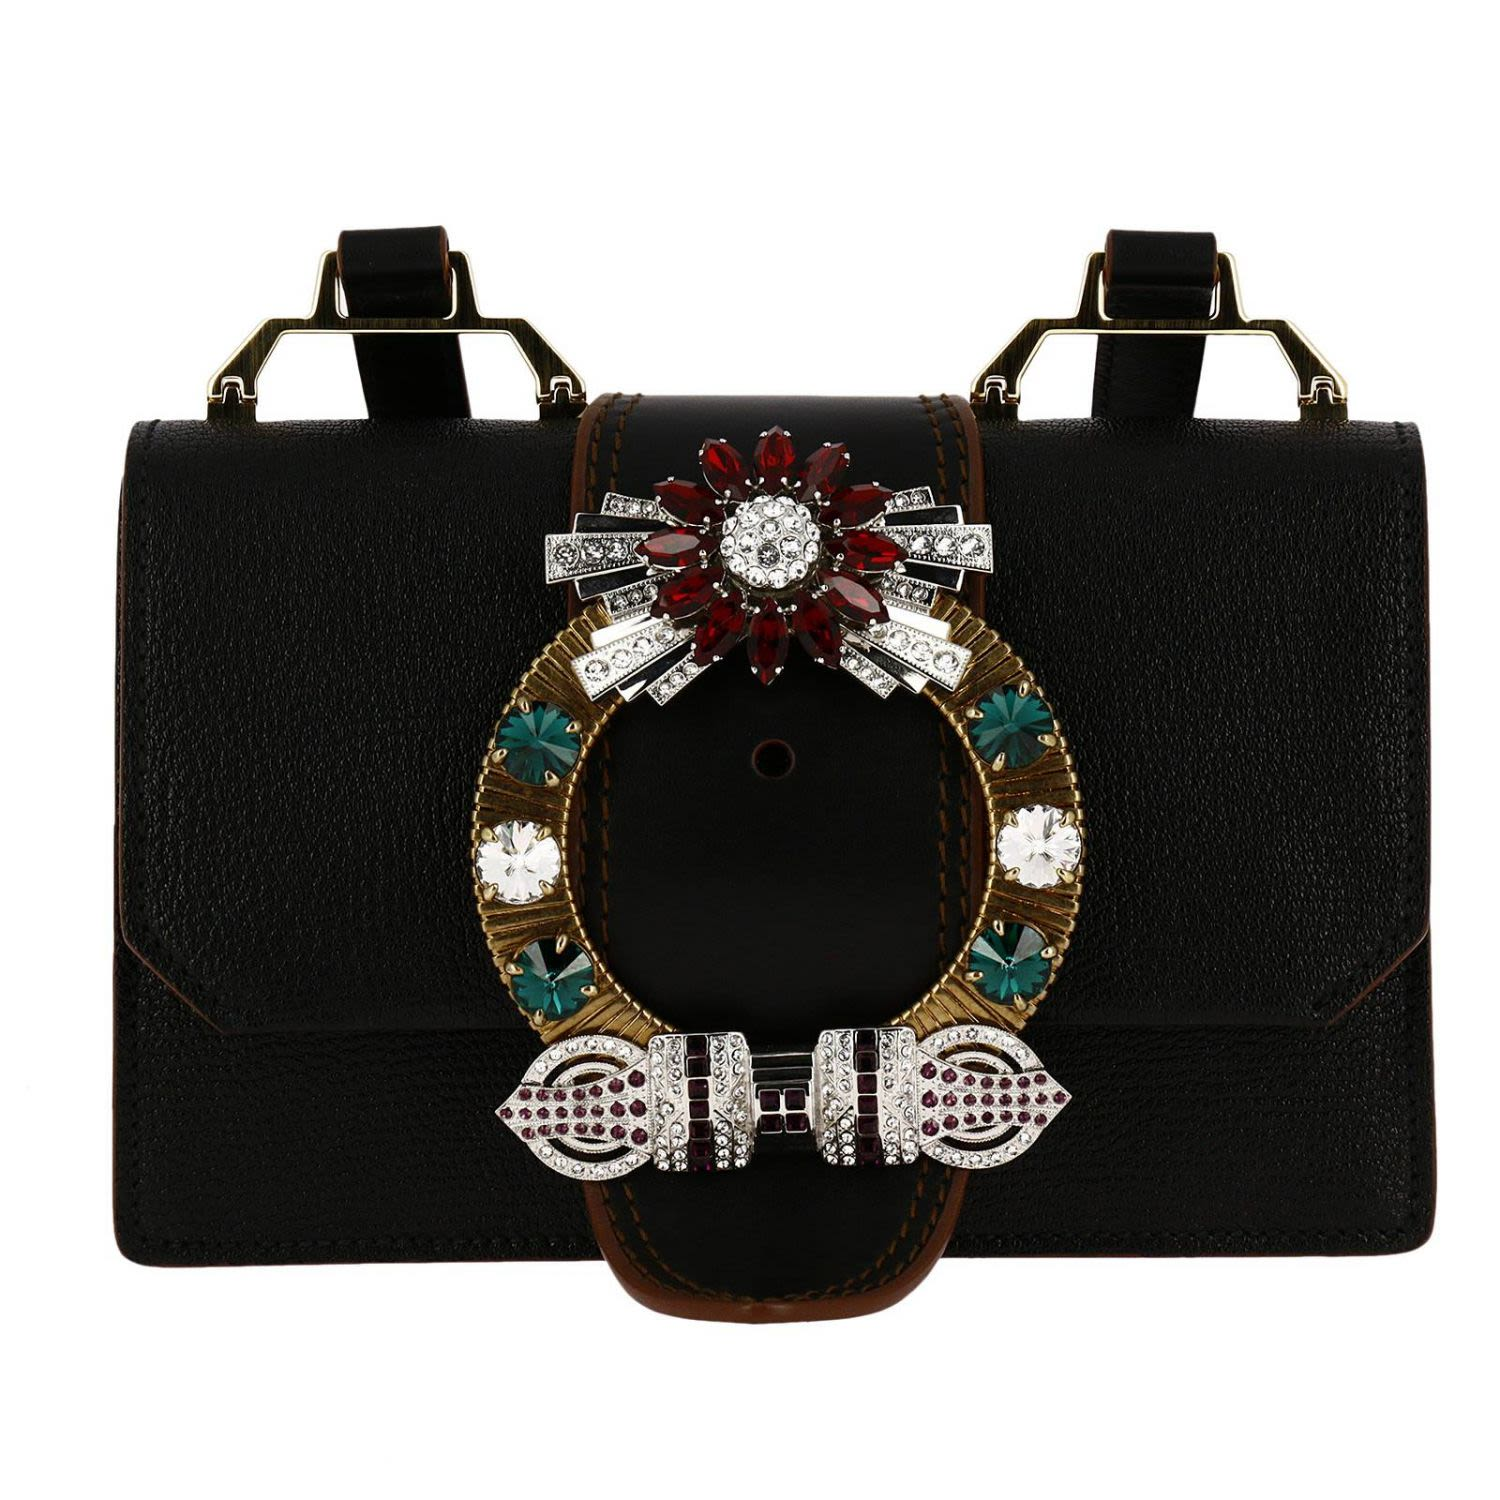 Mini Bag Shoulder Bag Women Miu Miu